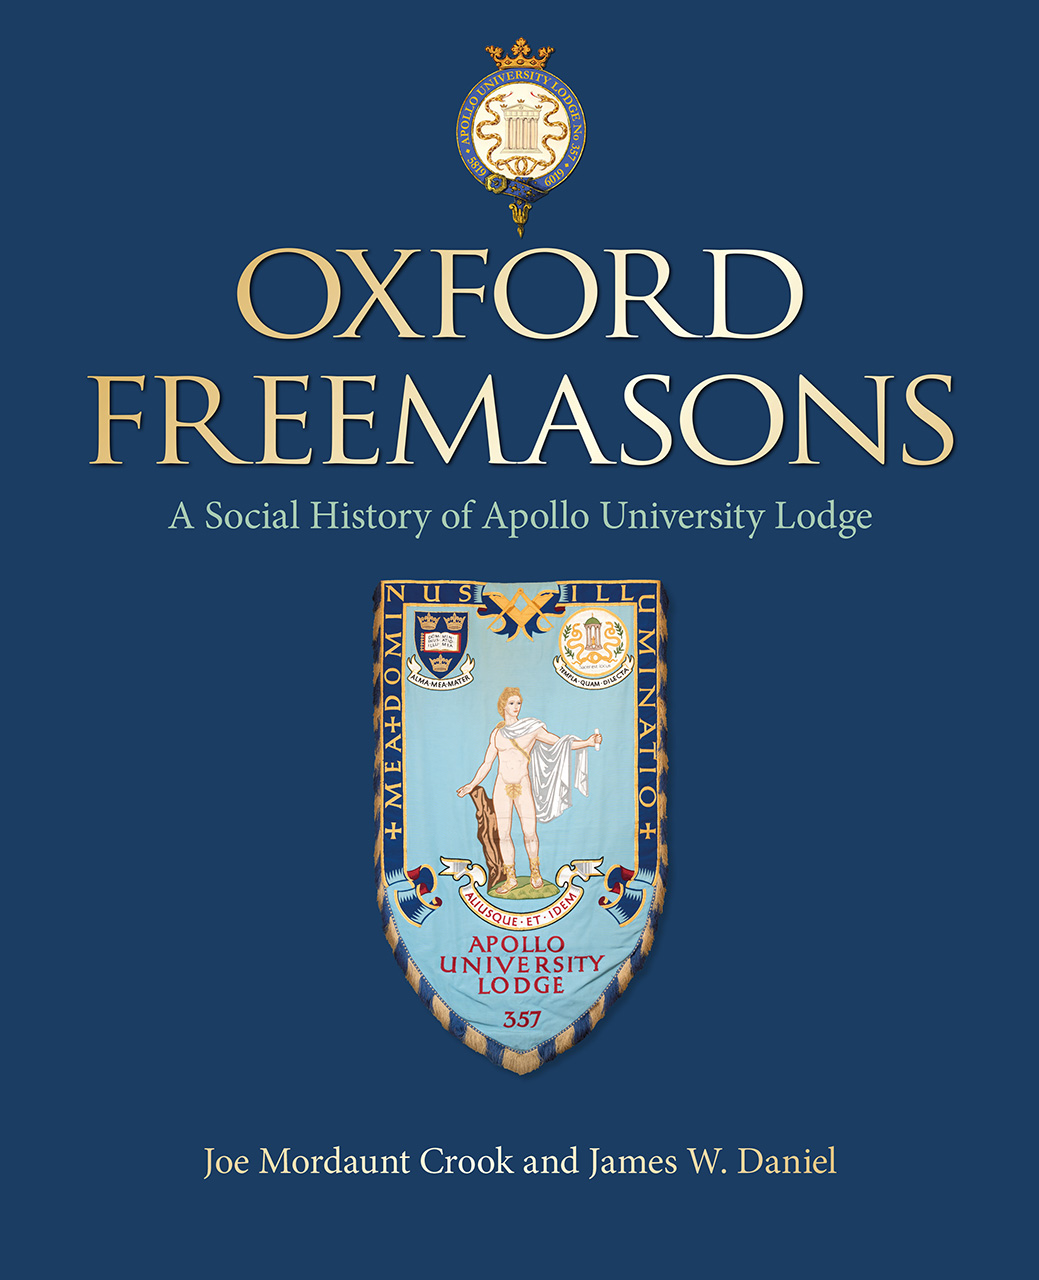 Oxford Freemasons: A Social History of Apollo University Lodge